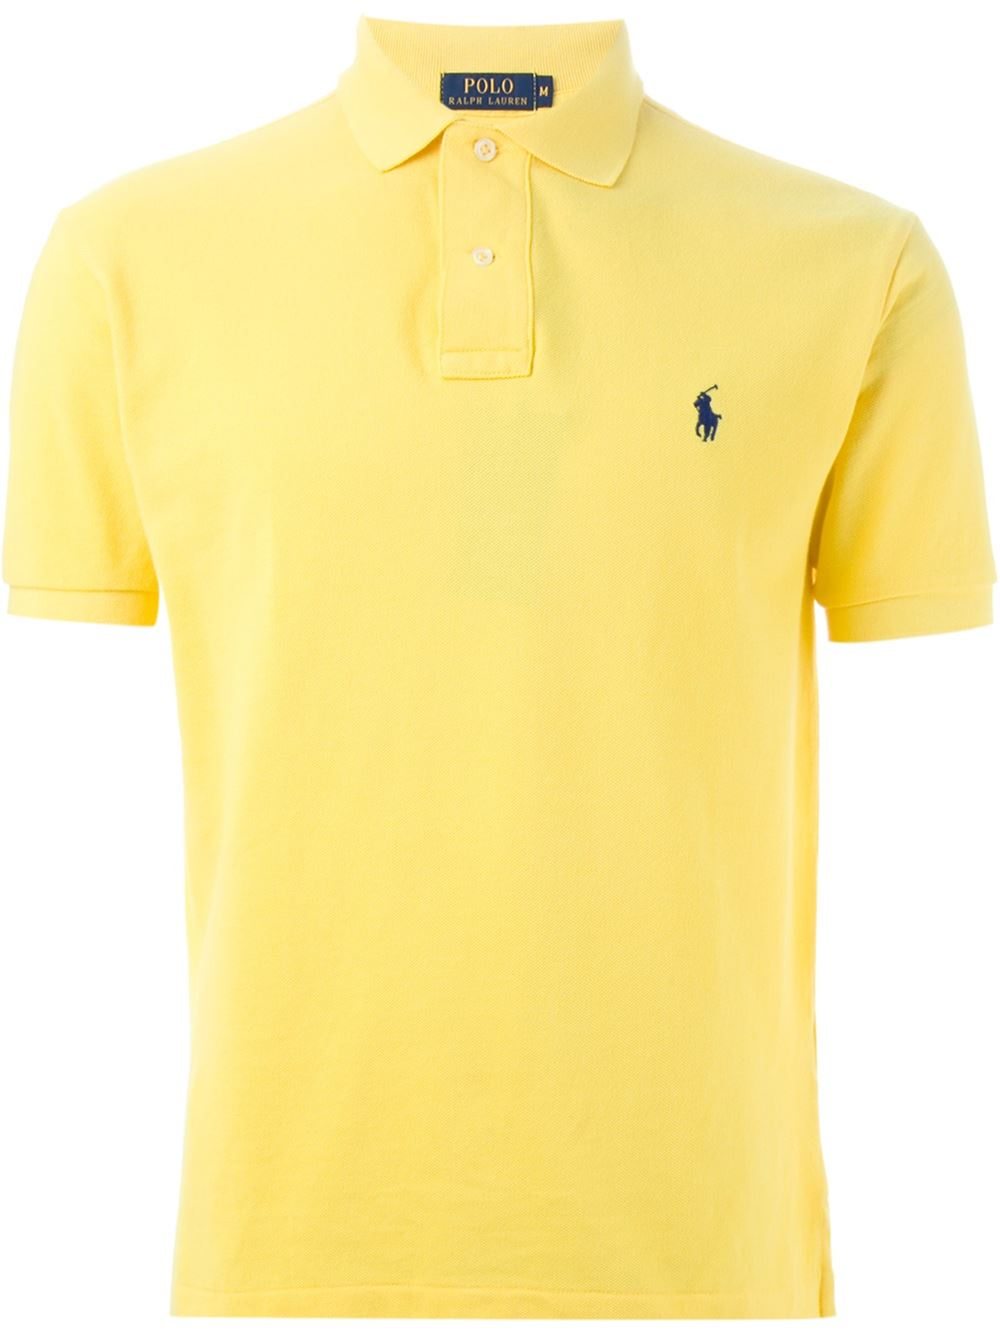 Polo ralph lauren slim fit polo shirt in yellow for men lyst for Man in polo shirt